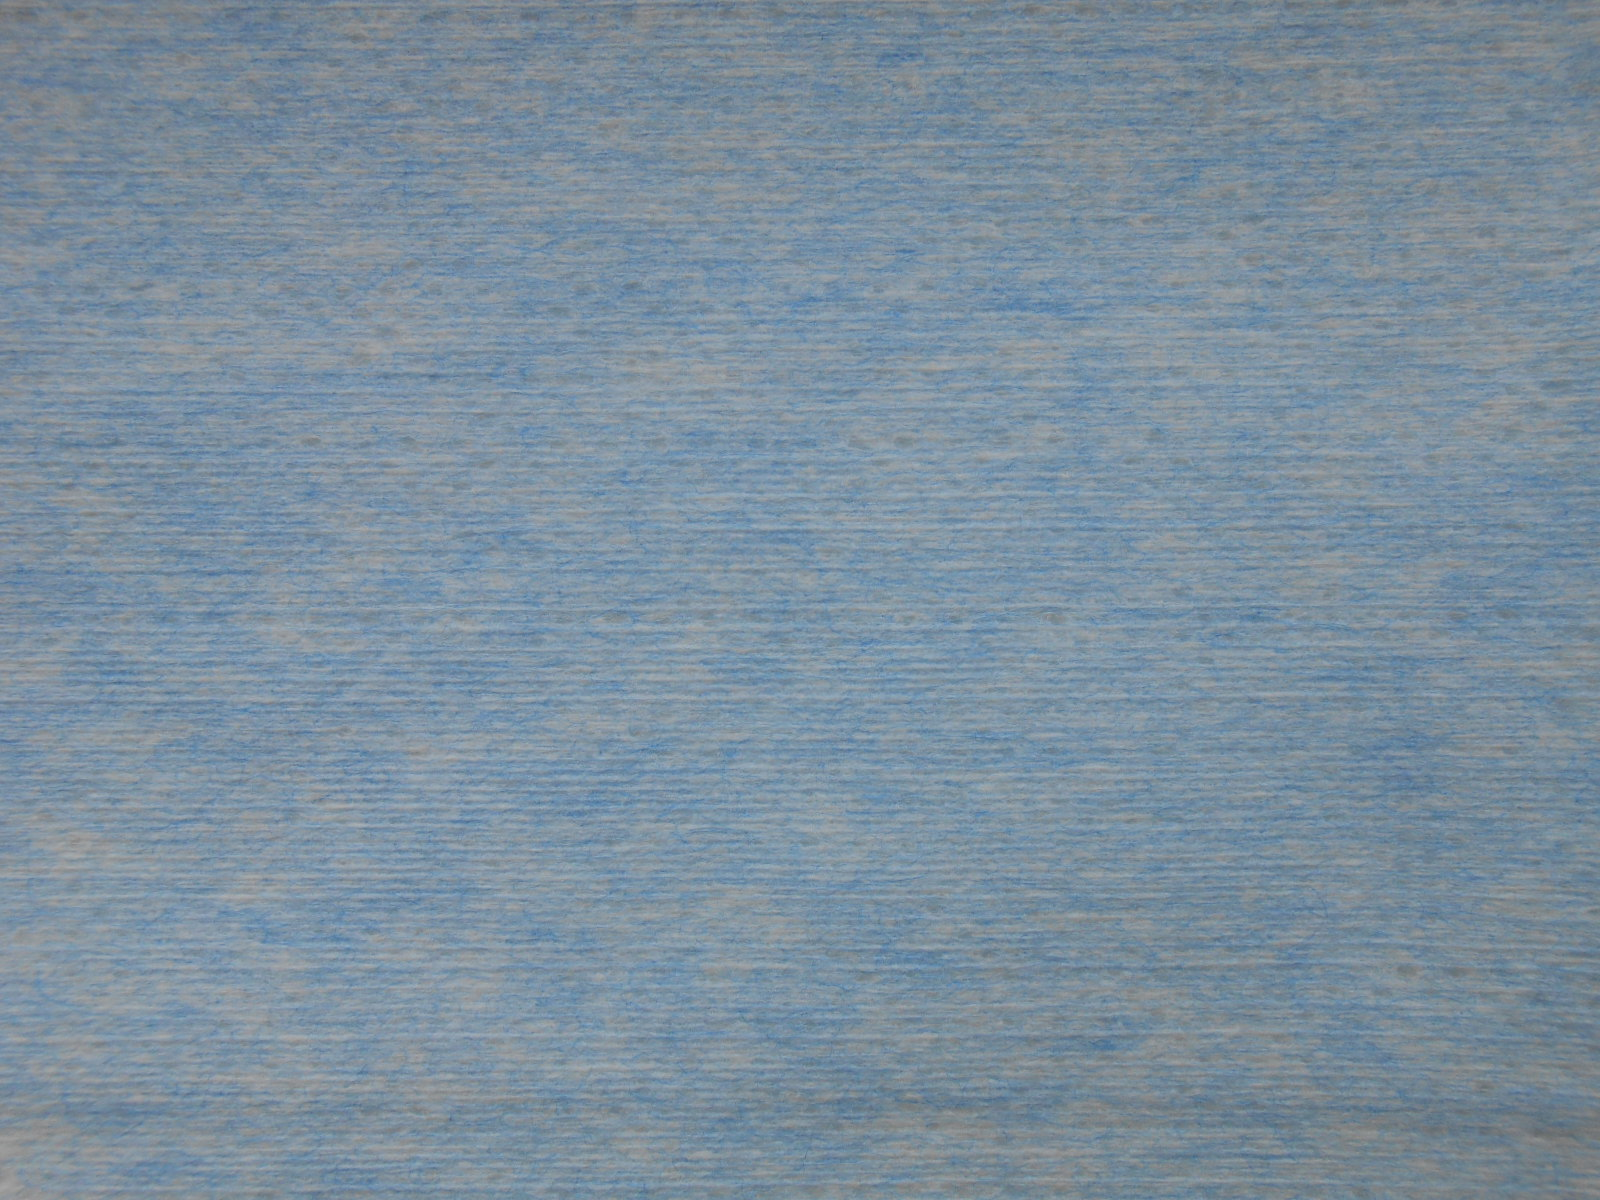 SOFTEXTRA Blue IF pck 42x21cm 20x075s